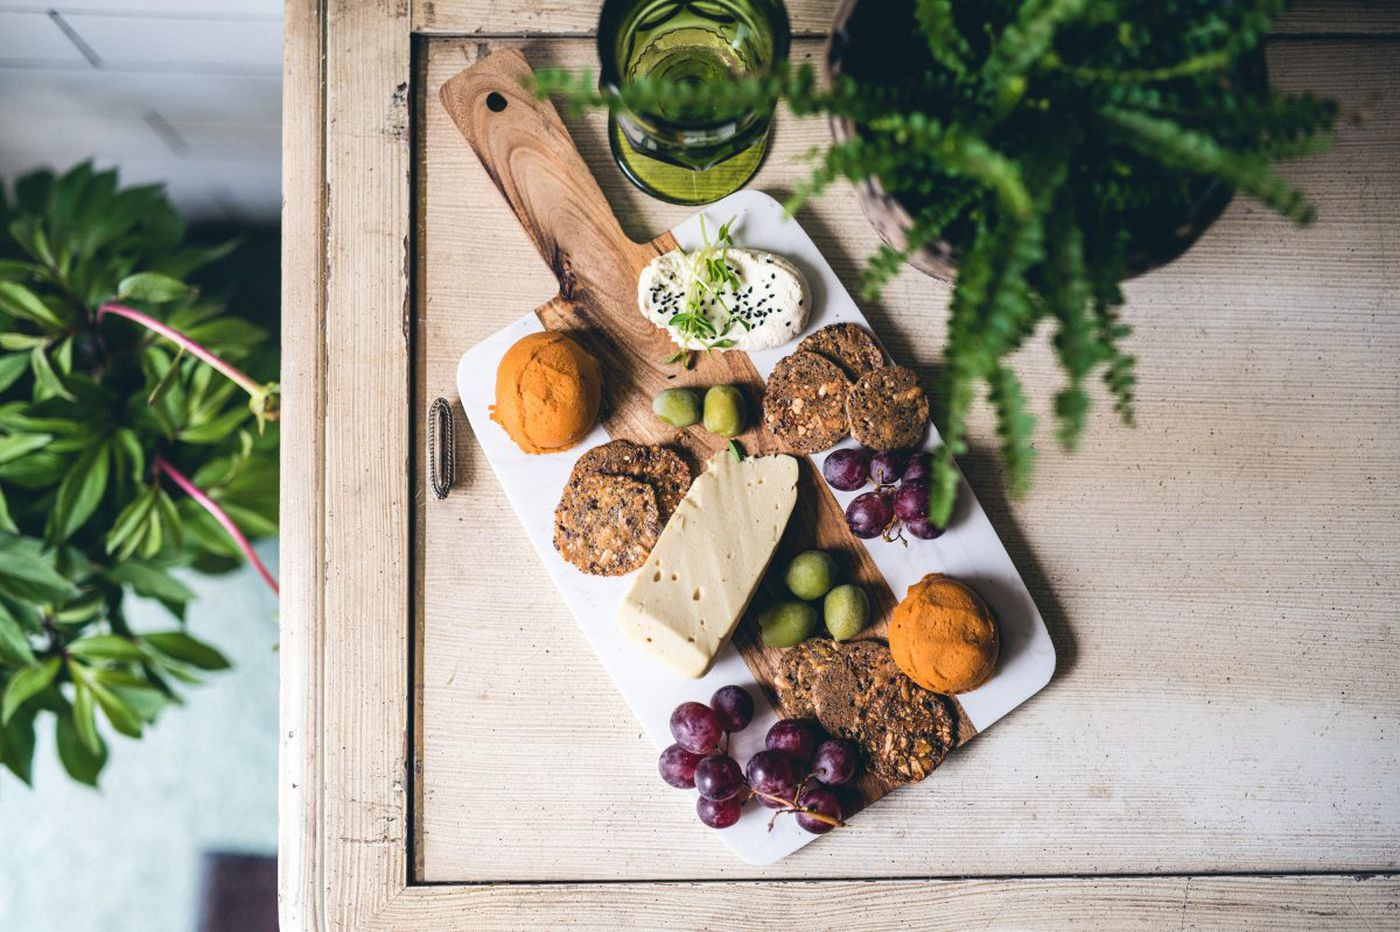 Vegan cheese is undergoing a revolution in Philly and beyond